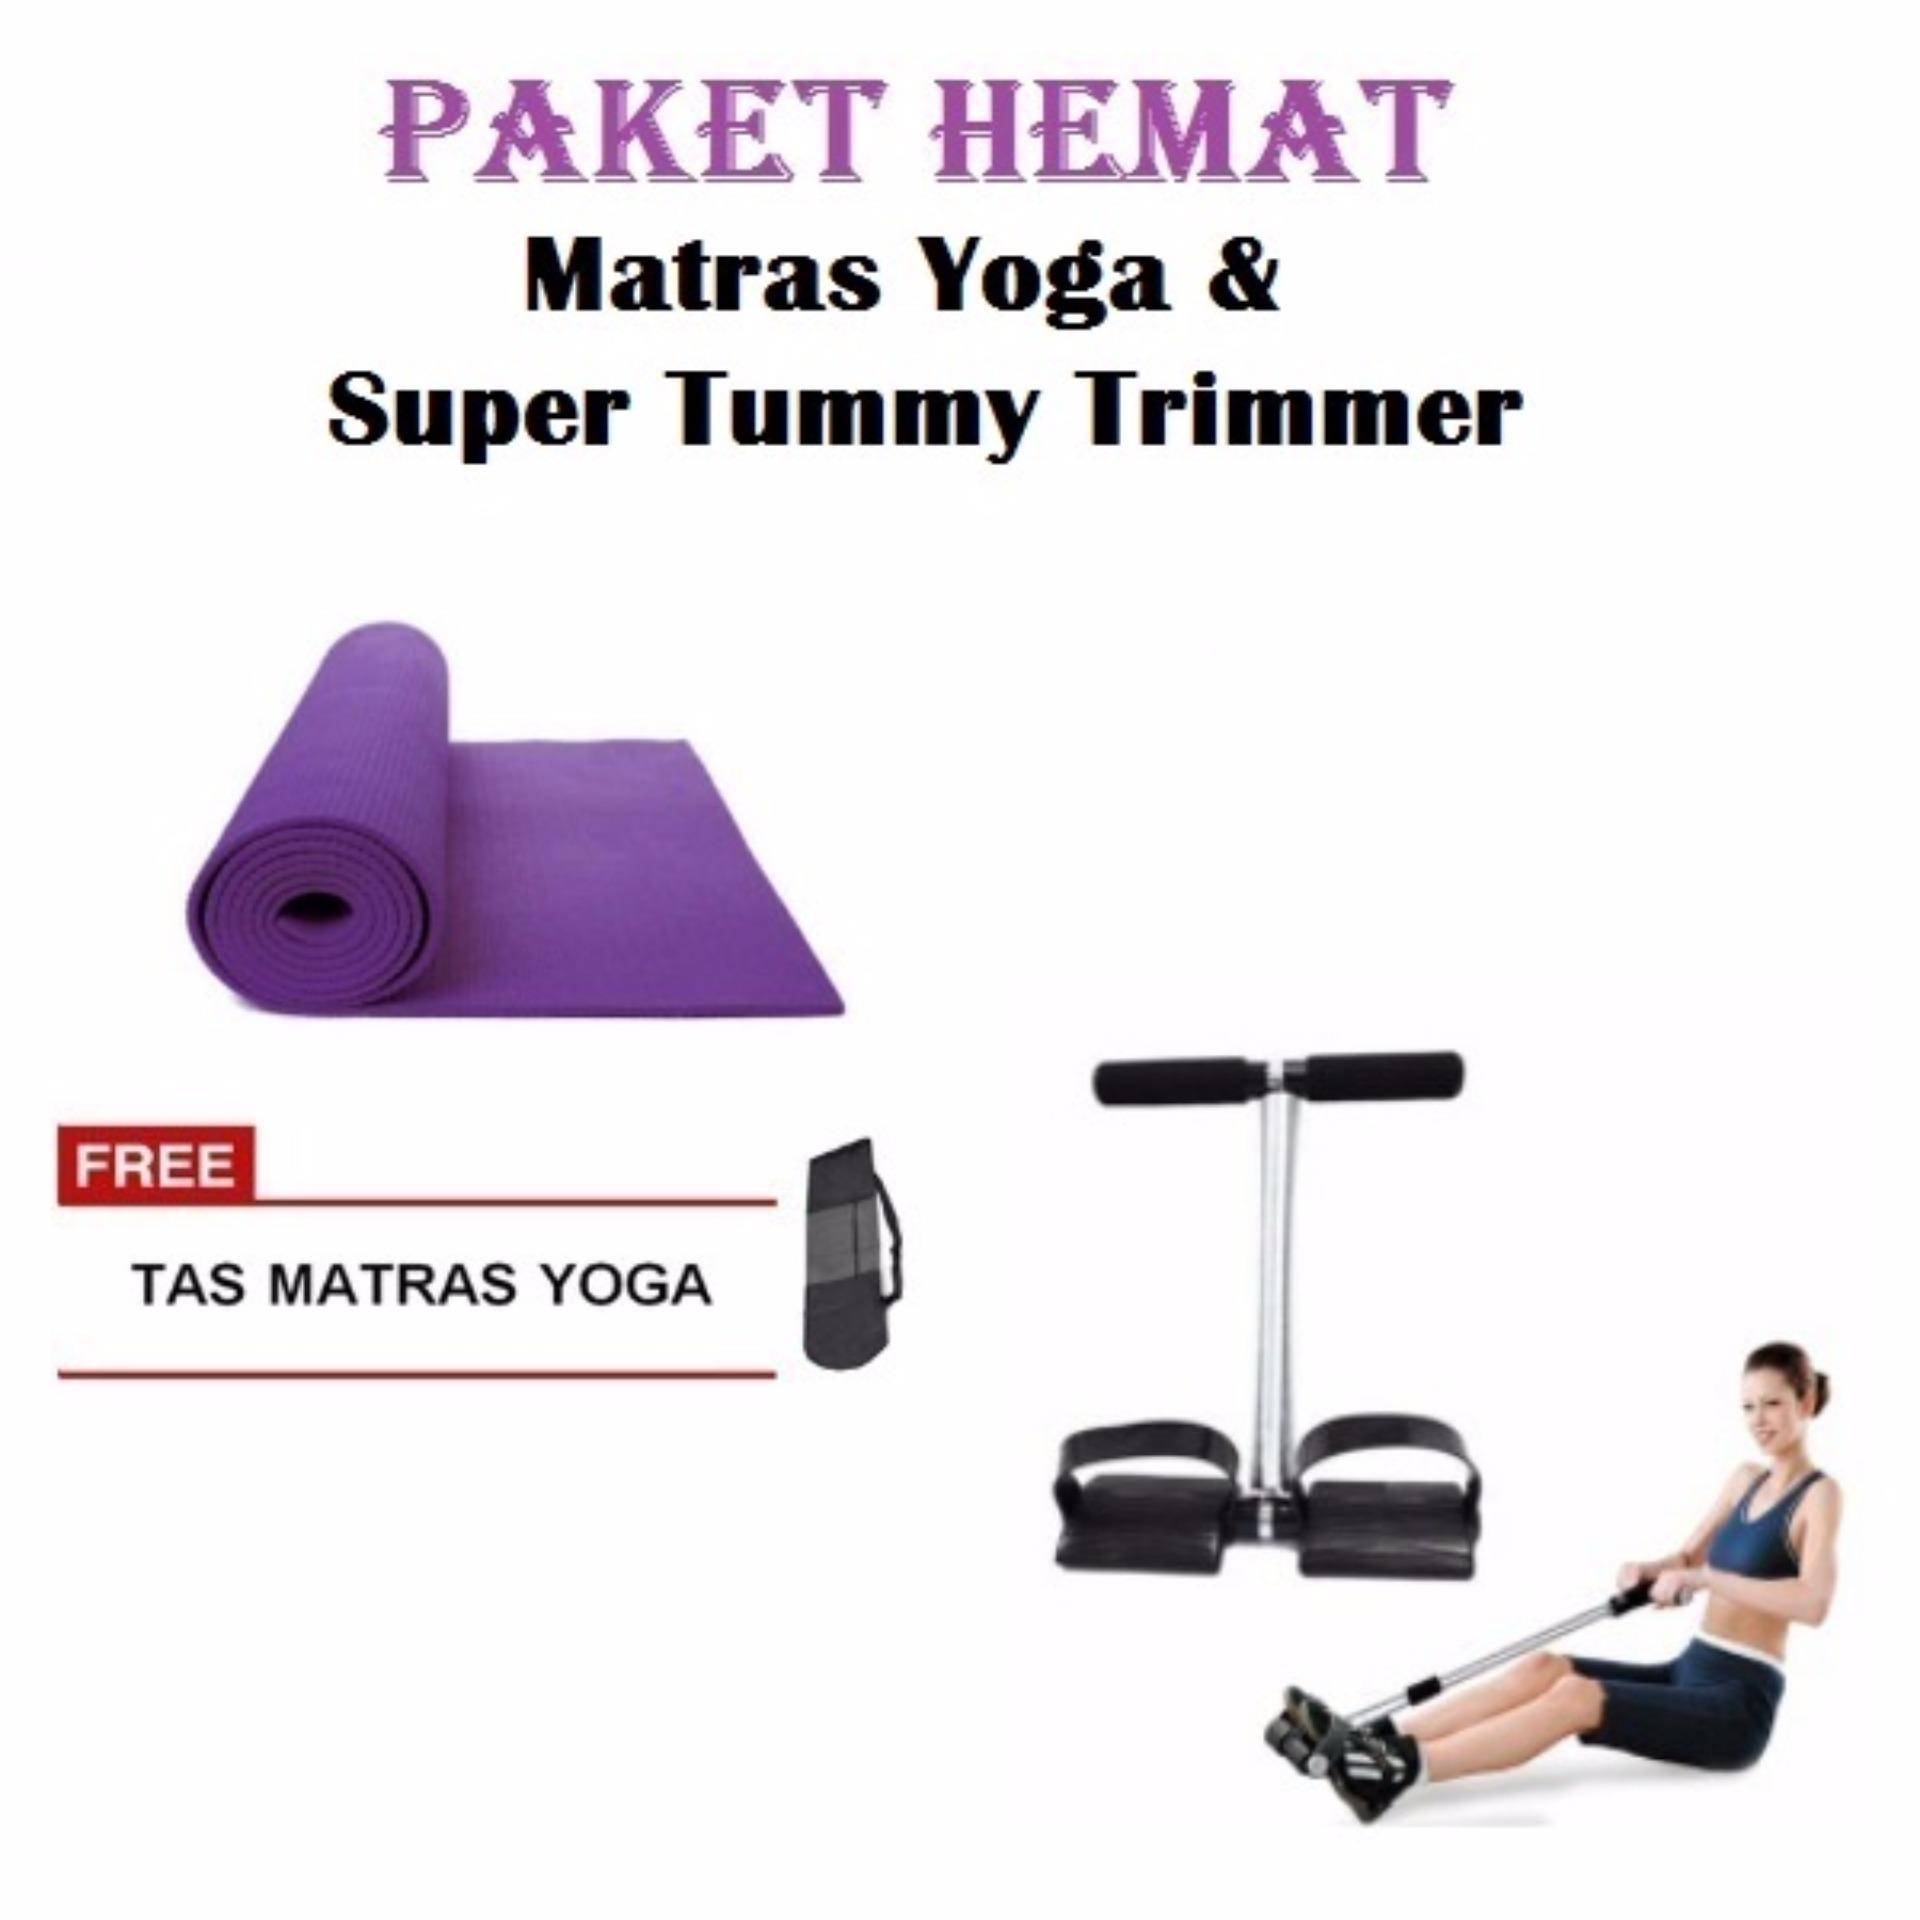 Paket Hemat Matras Yoga tebal 8mm Dan Super Tummy Trimmer Lazada Indonesia .